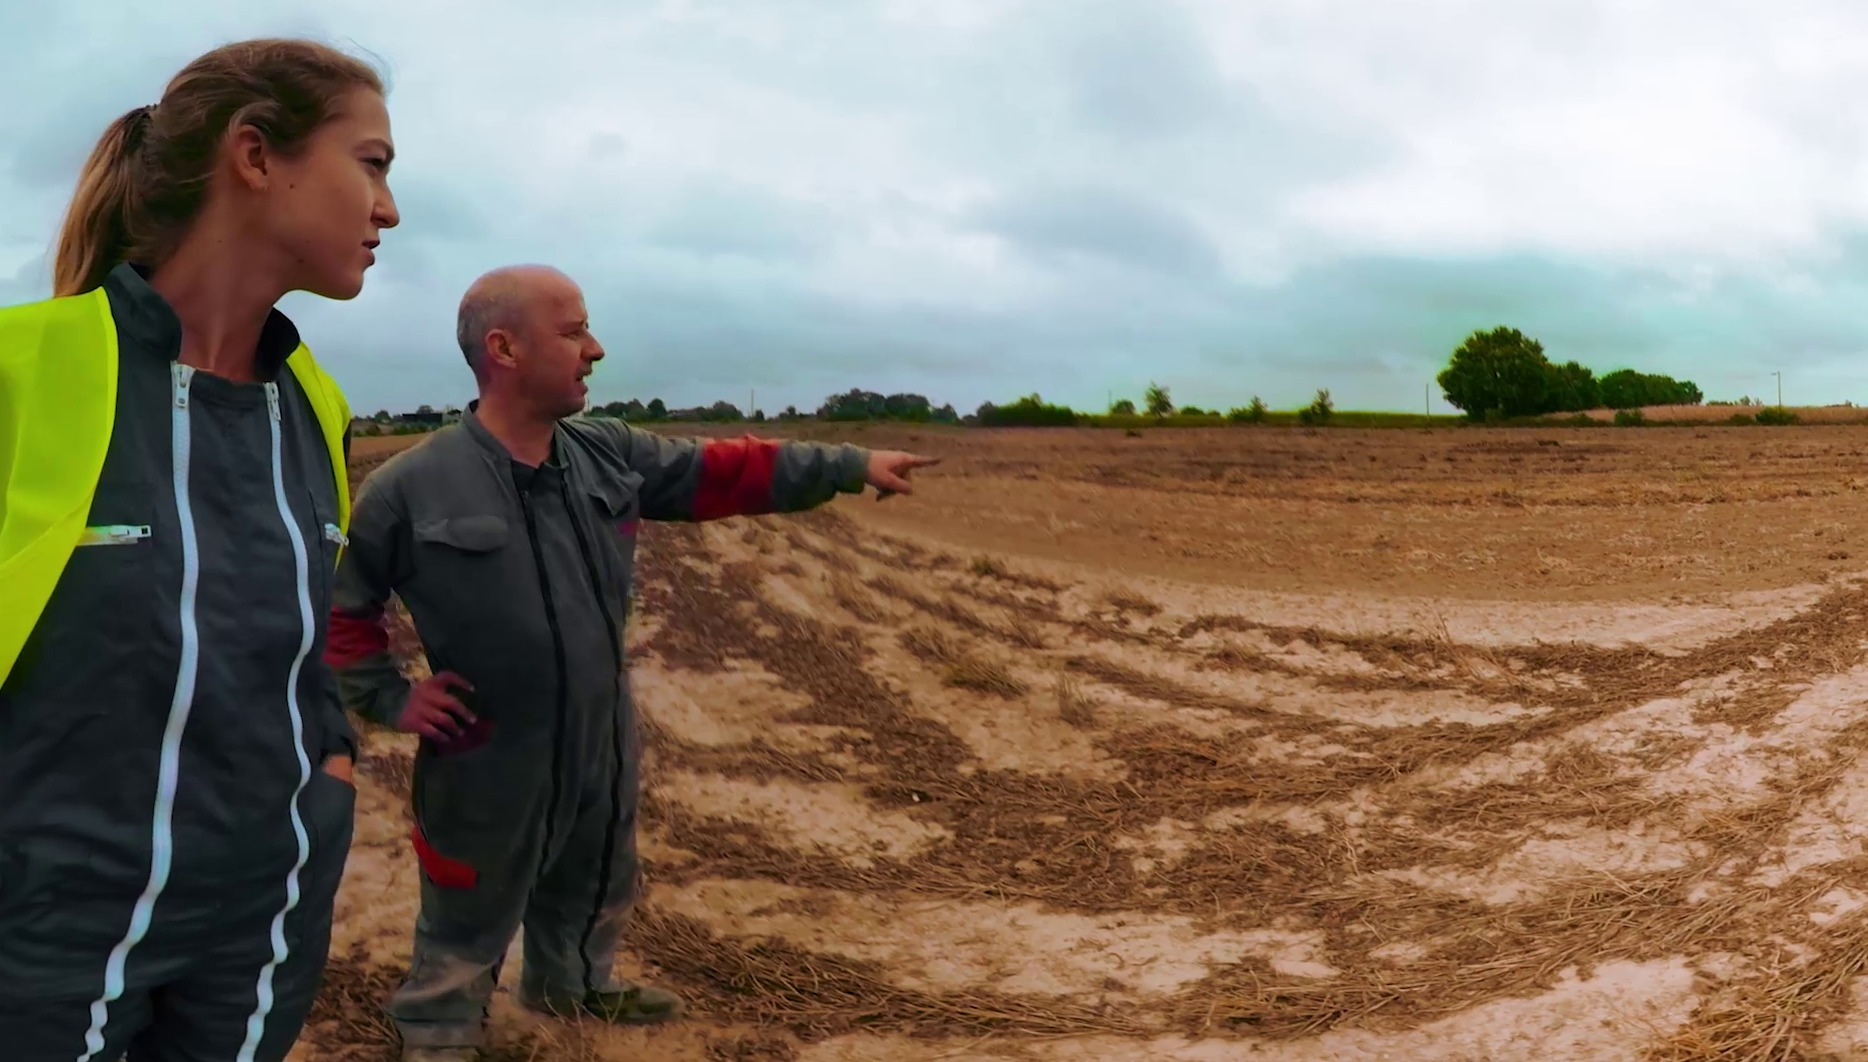 Video : Docu-fiction 360°: apprentie conductrice de travaux en entreprise de travaux agricoles